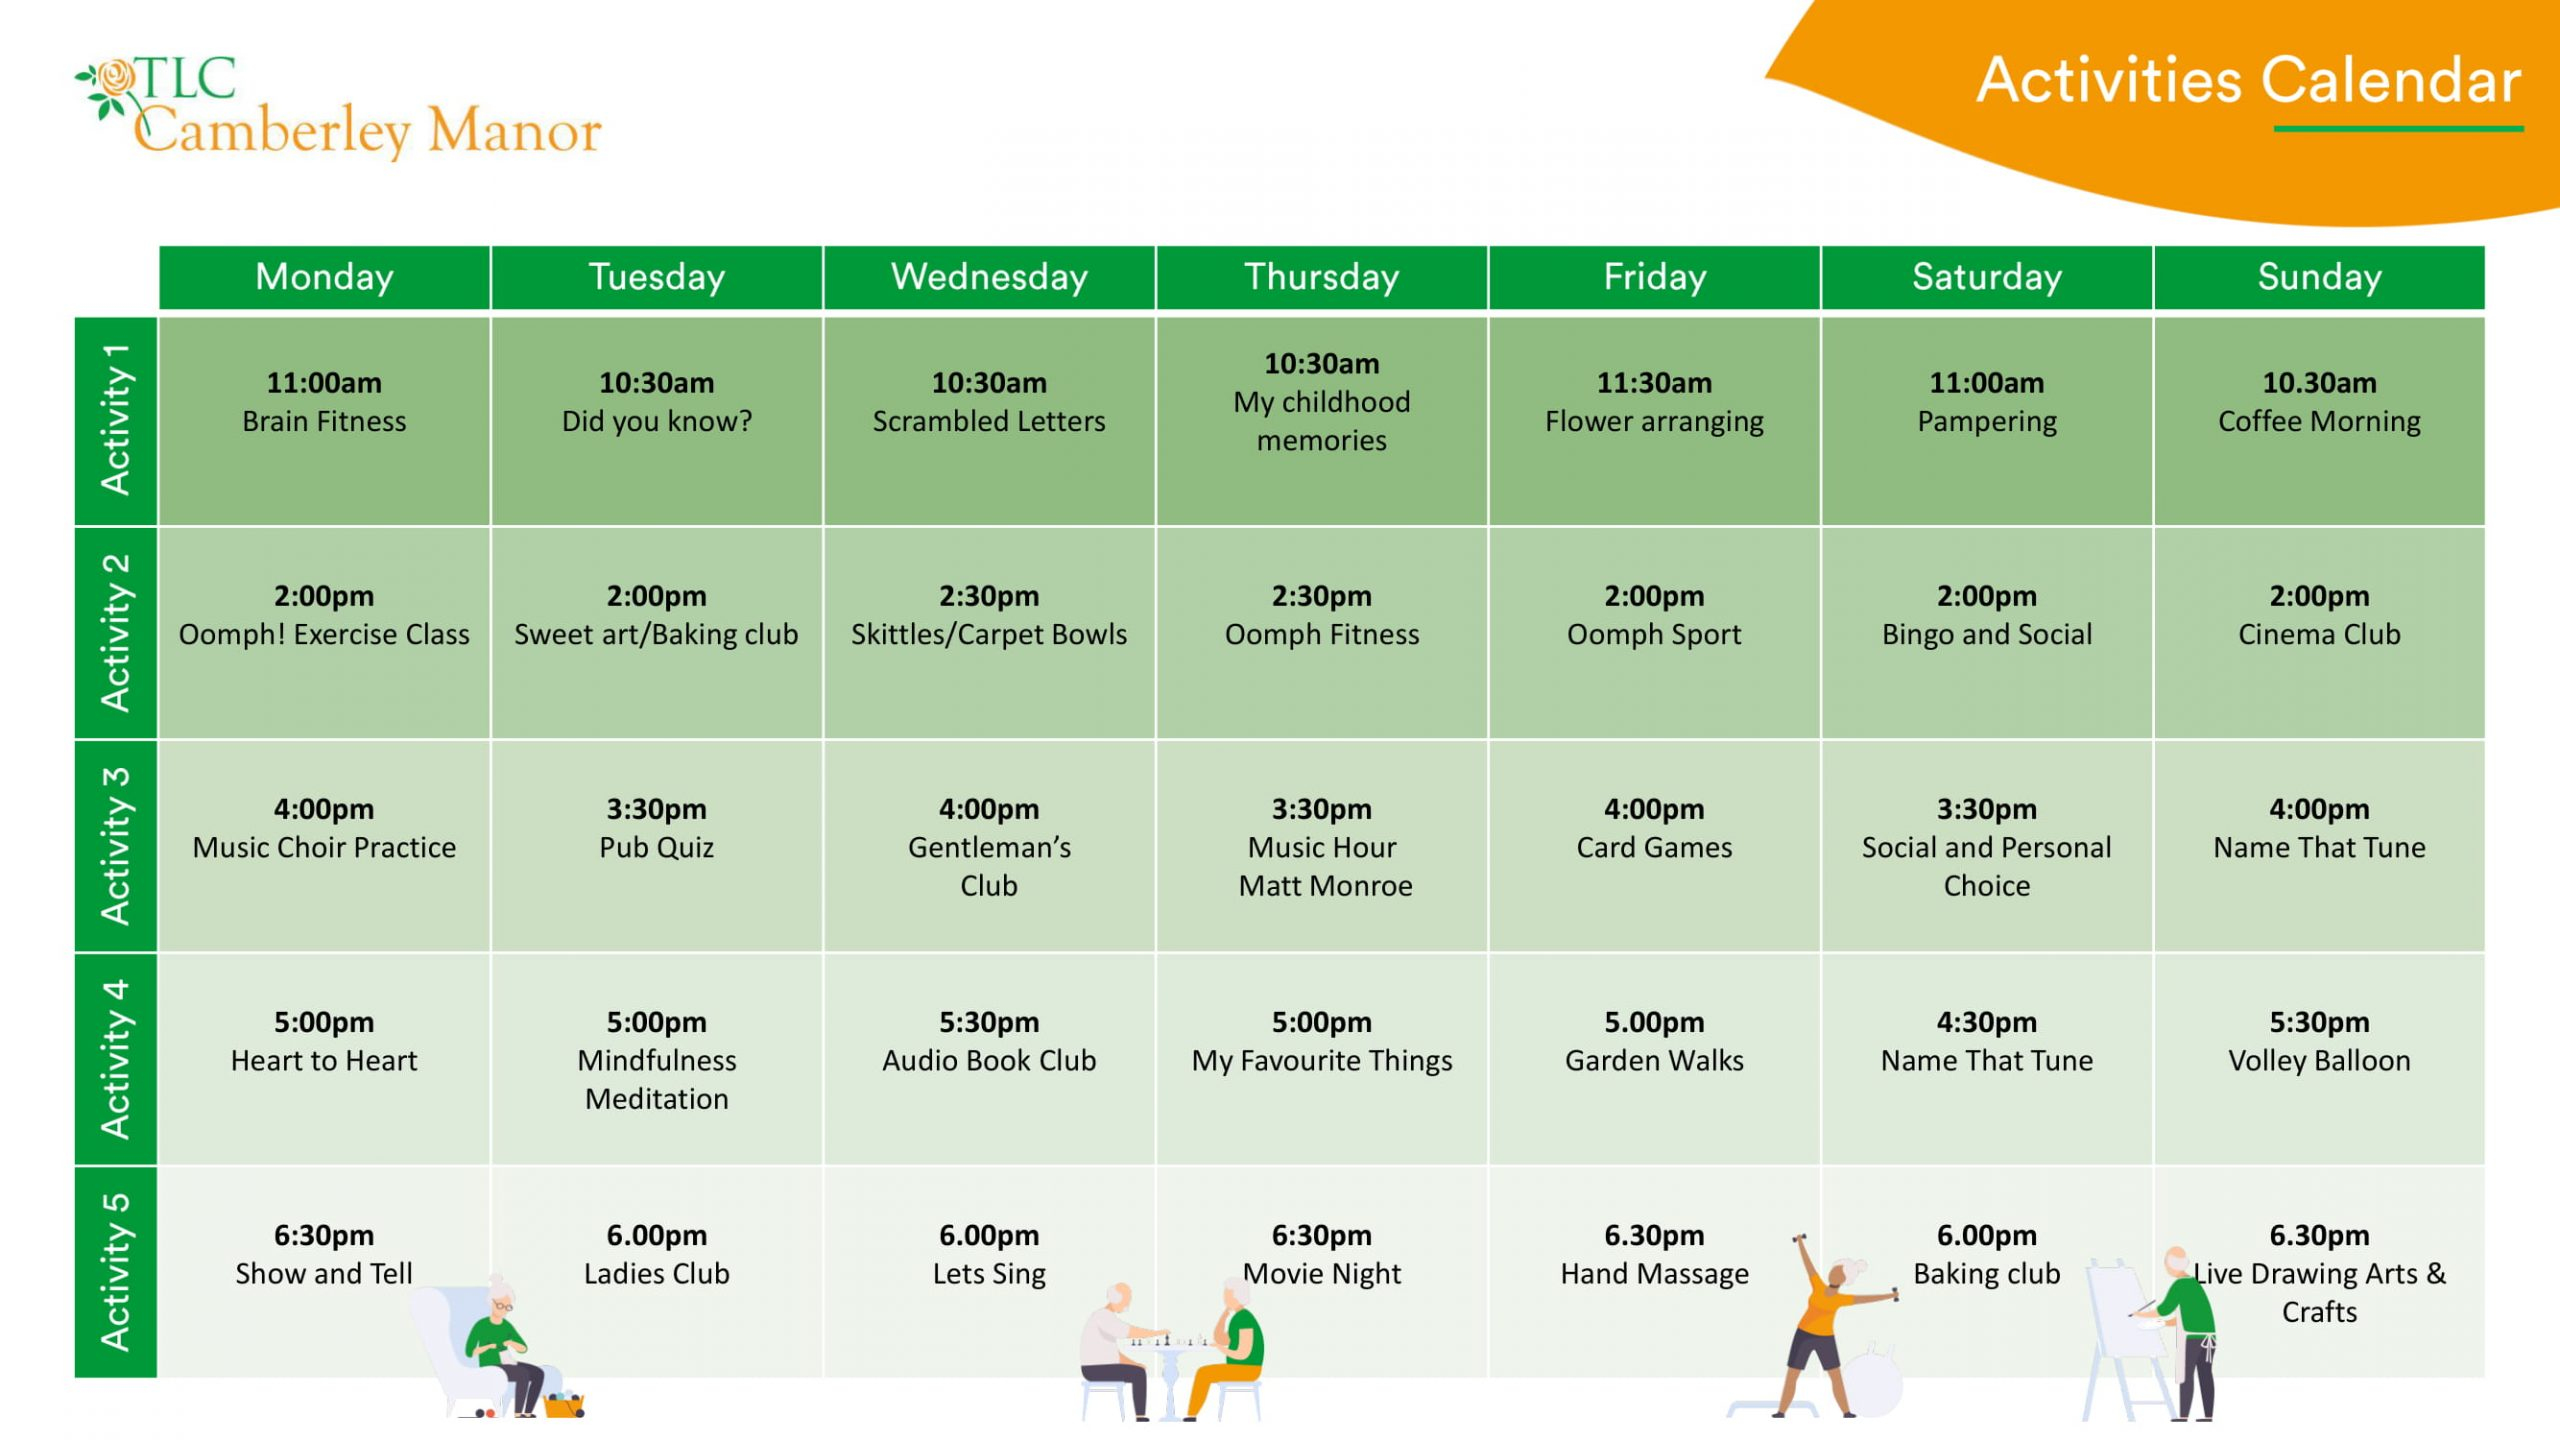 Camberley sample activities calendar